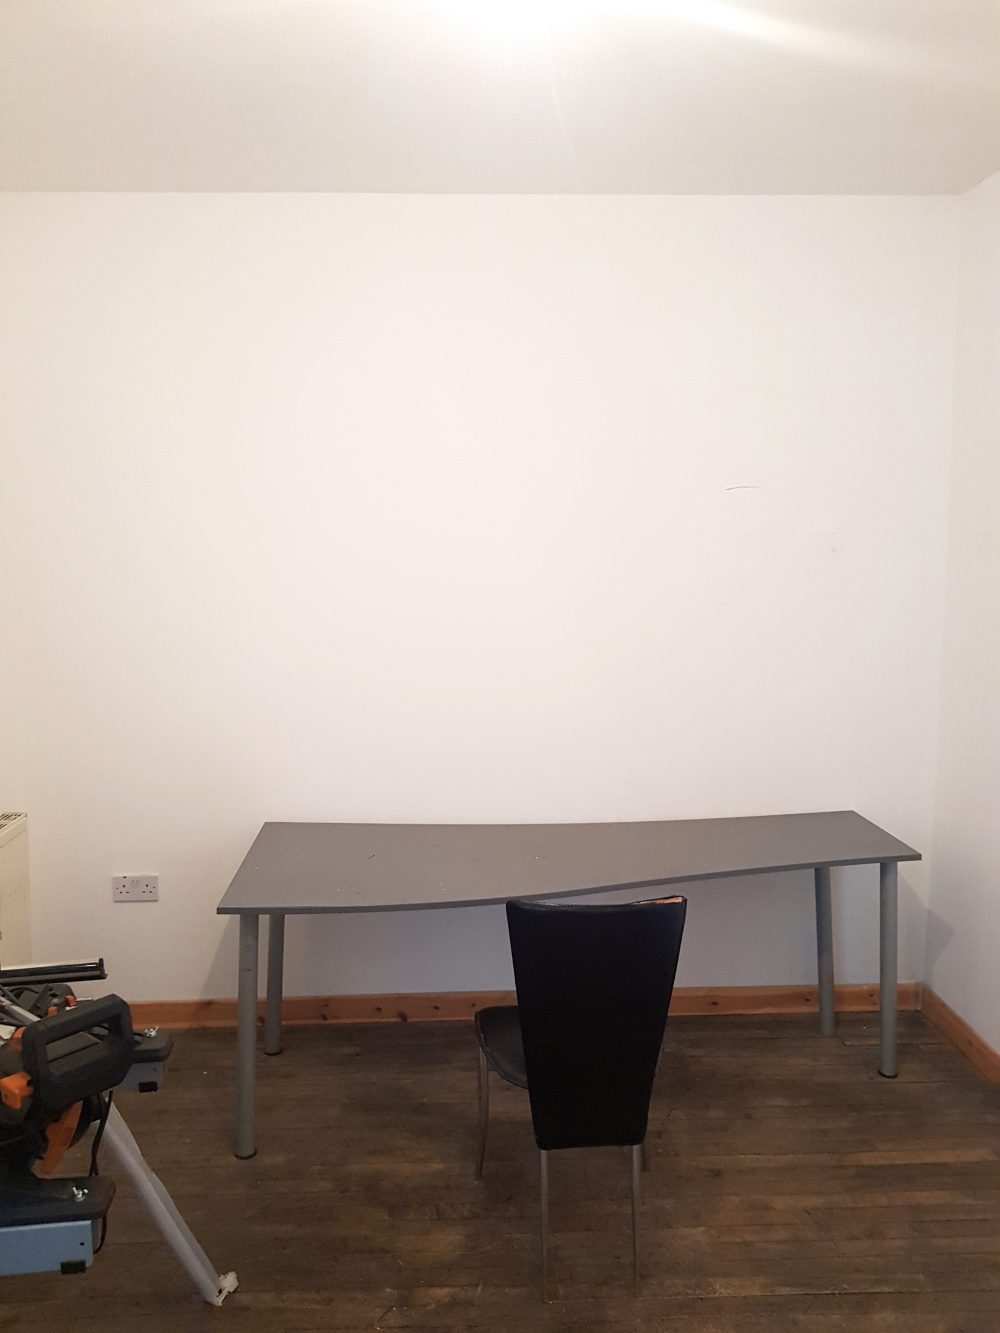 Light indurstrial unit to rent in N15 Markfield rd Gaunson House Studio B and C PIc2